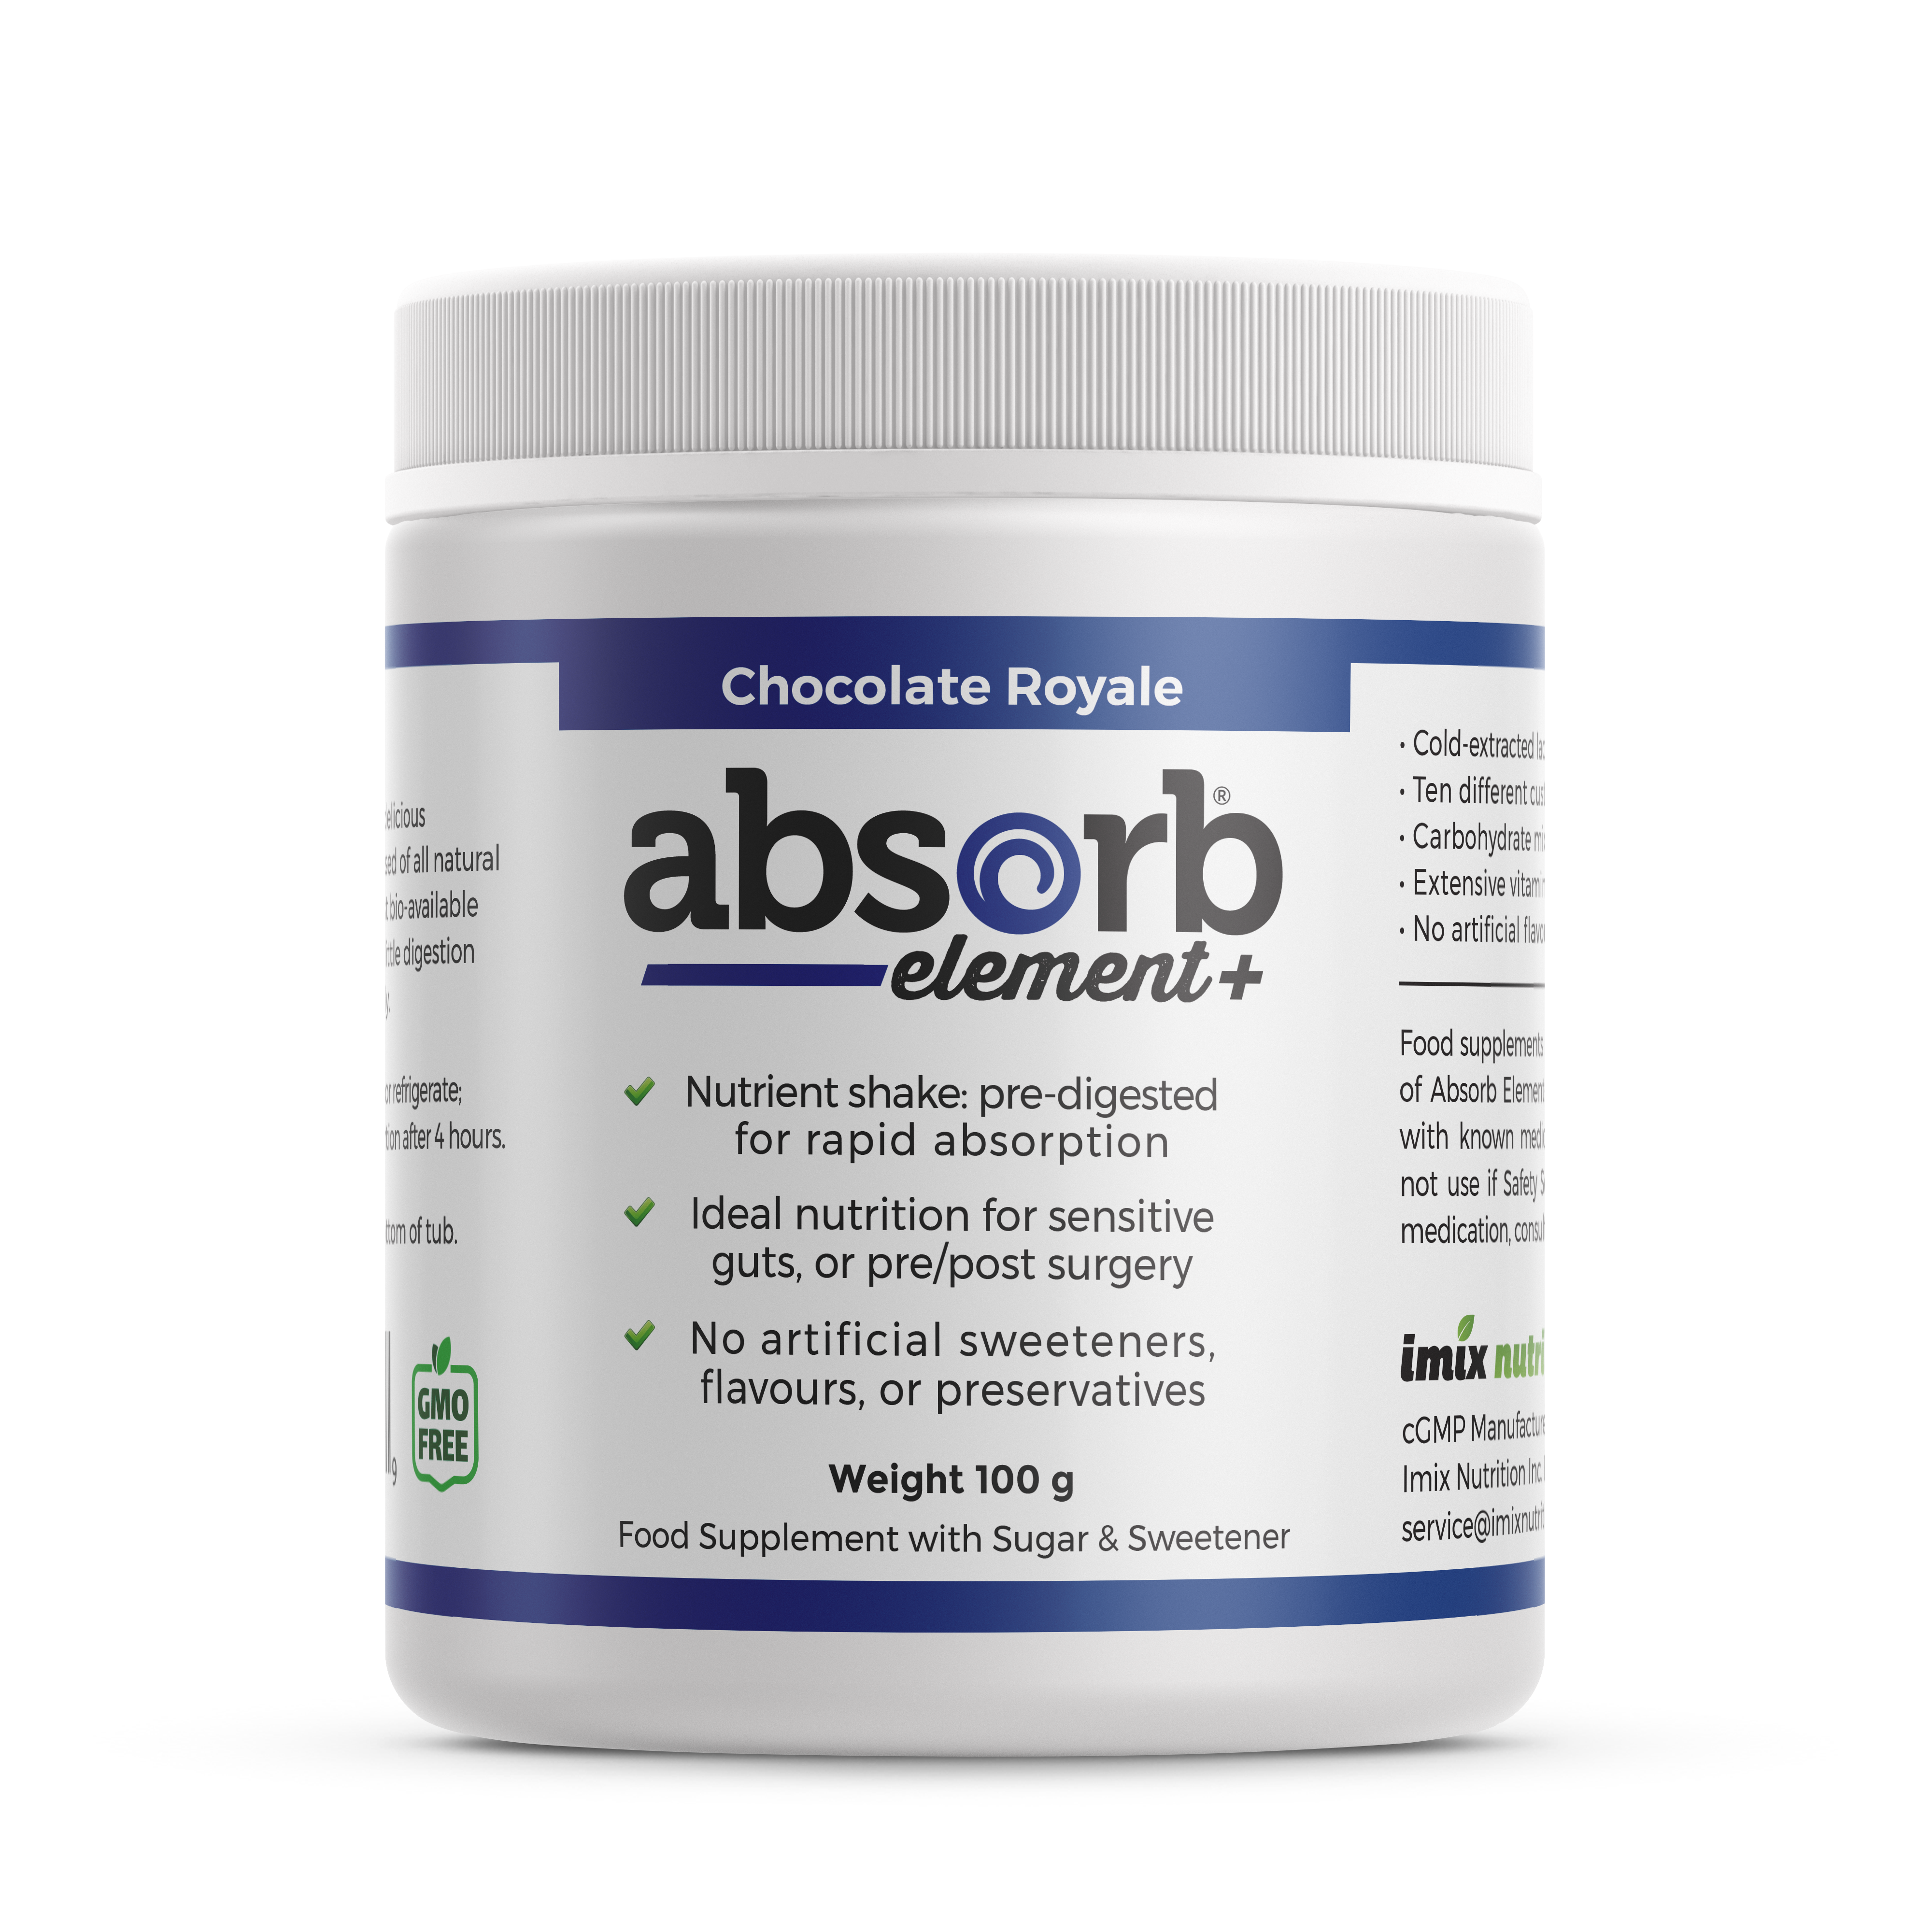 Absorb Element+ Chocolate Royale - 100g (Sample Size)